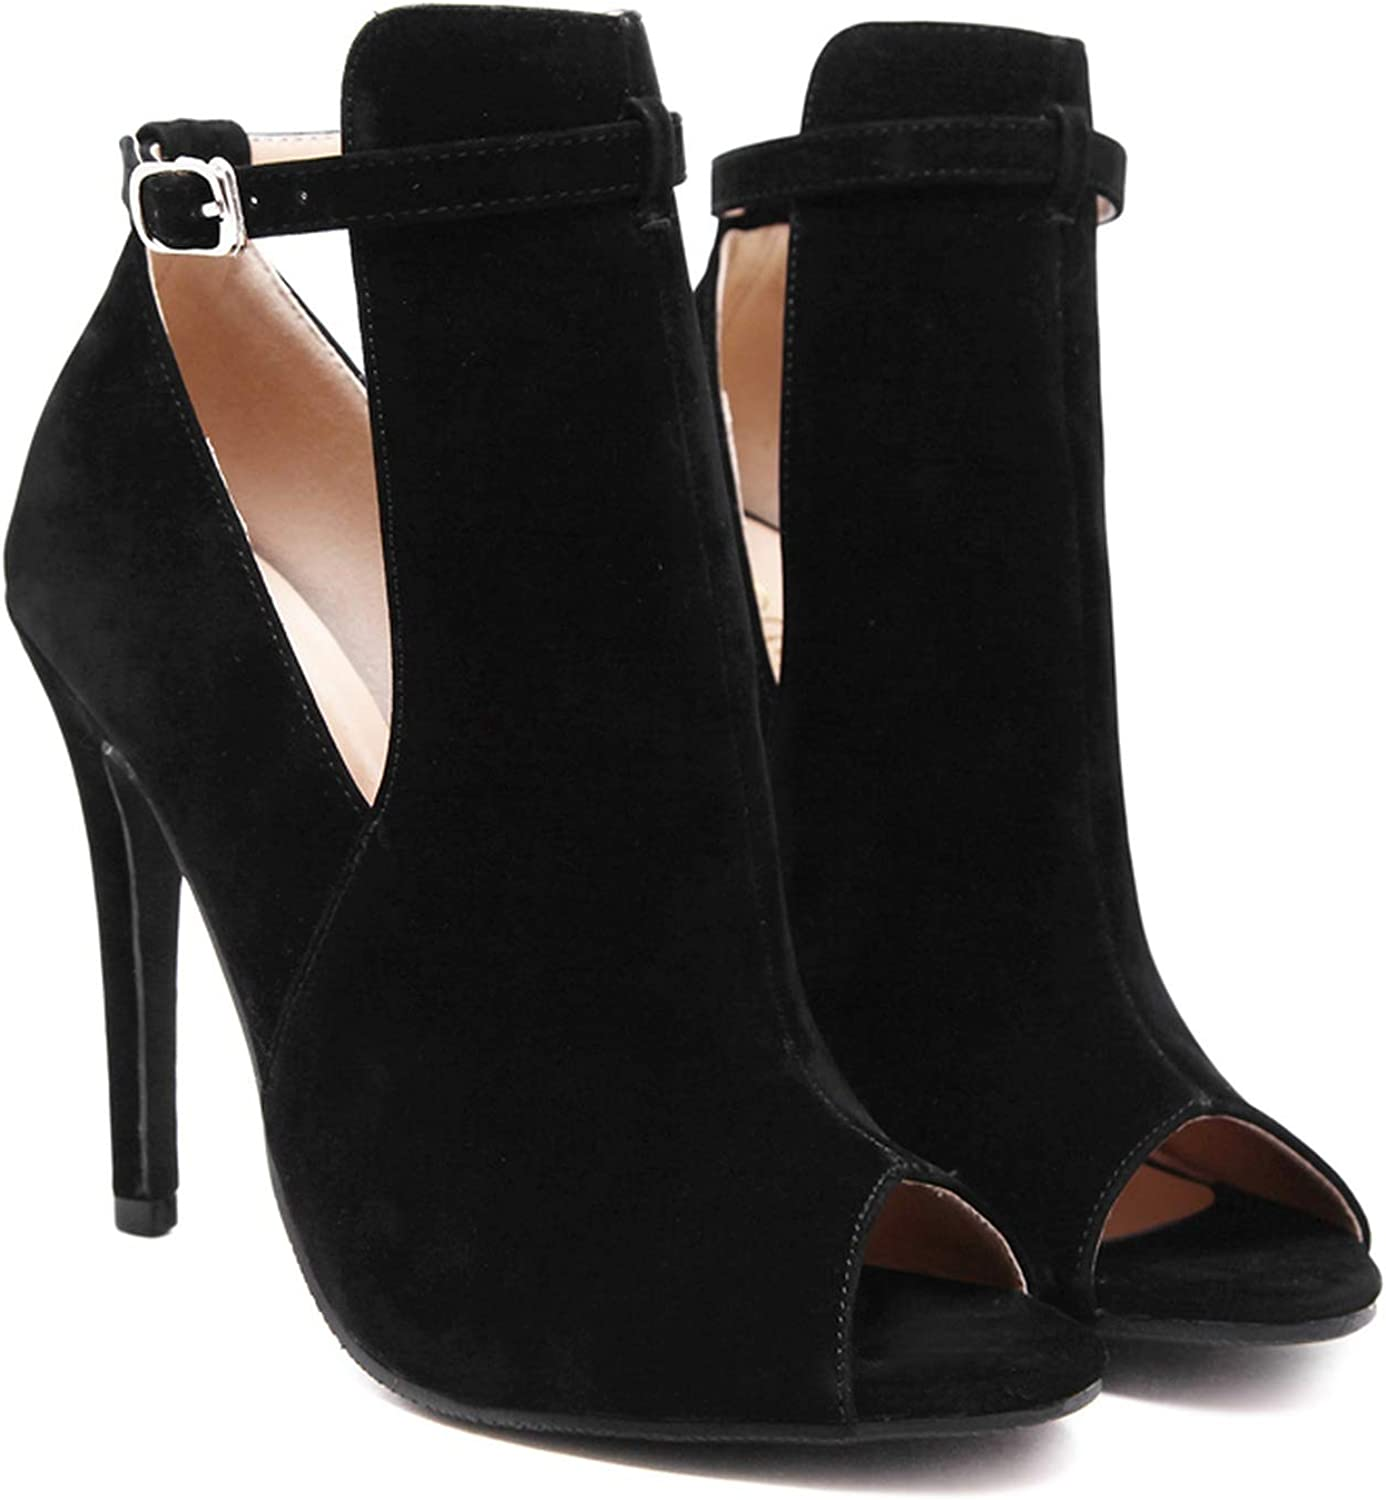 Little SU Peep Toe Sandals Suede Ankle shoes Thin High Heels Women Boots Ankle Strap Buckle Pumps